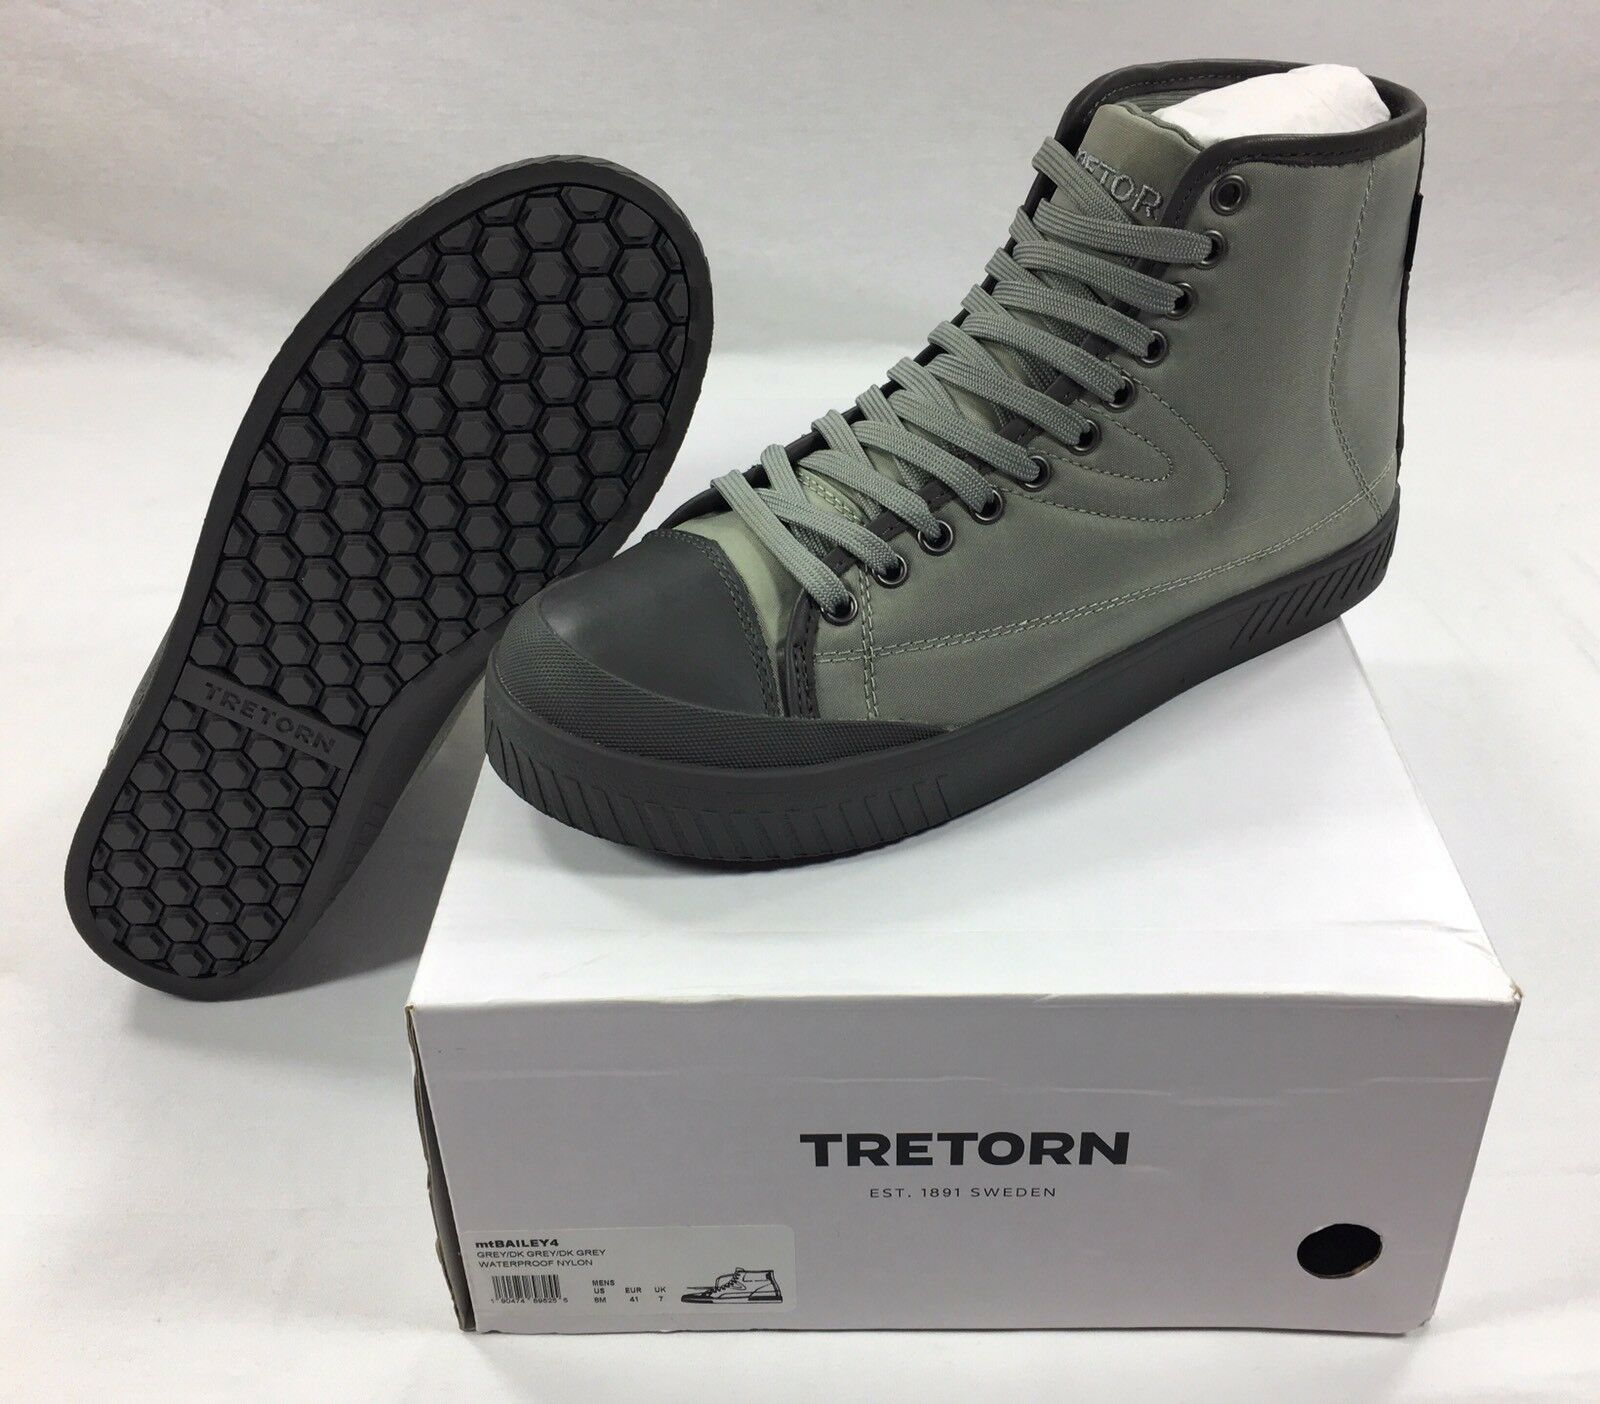 Scarpe casual da uomo  Tretorn uomos Bailey4 Hi Lace Sneaker Shoes Size 8 Waterproof Boot Nylon Upper